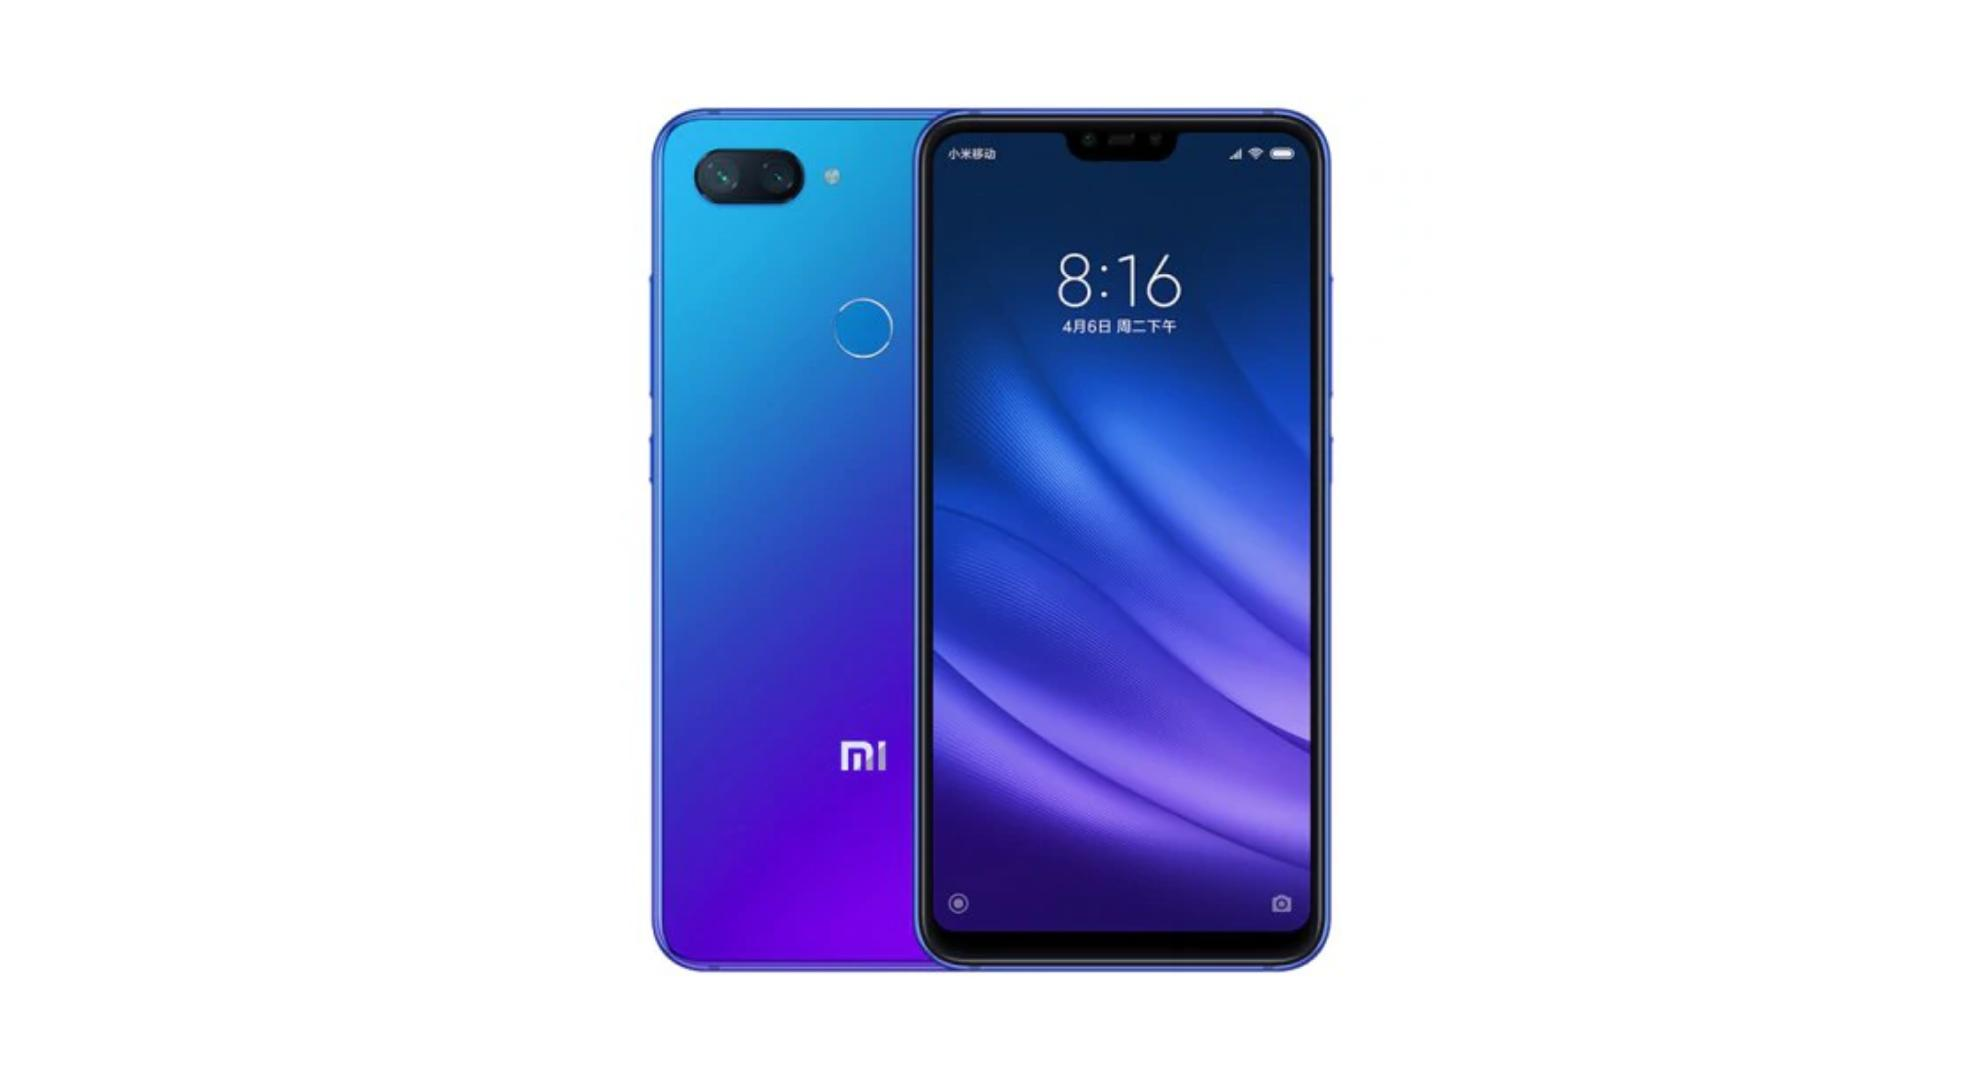 bon plan la version lite du xiaomi mi 8 est disponible. Black Bedroom Furniture Sets. Home Design Ideas